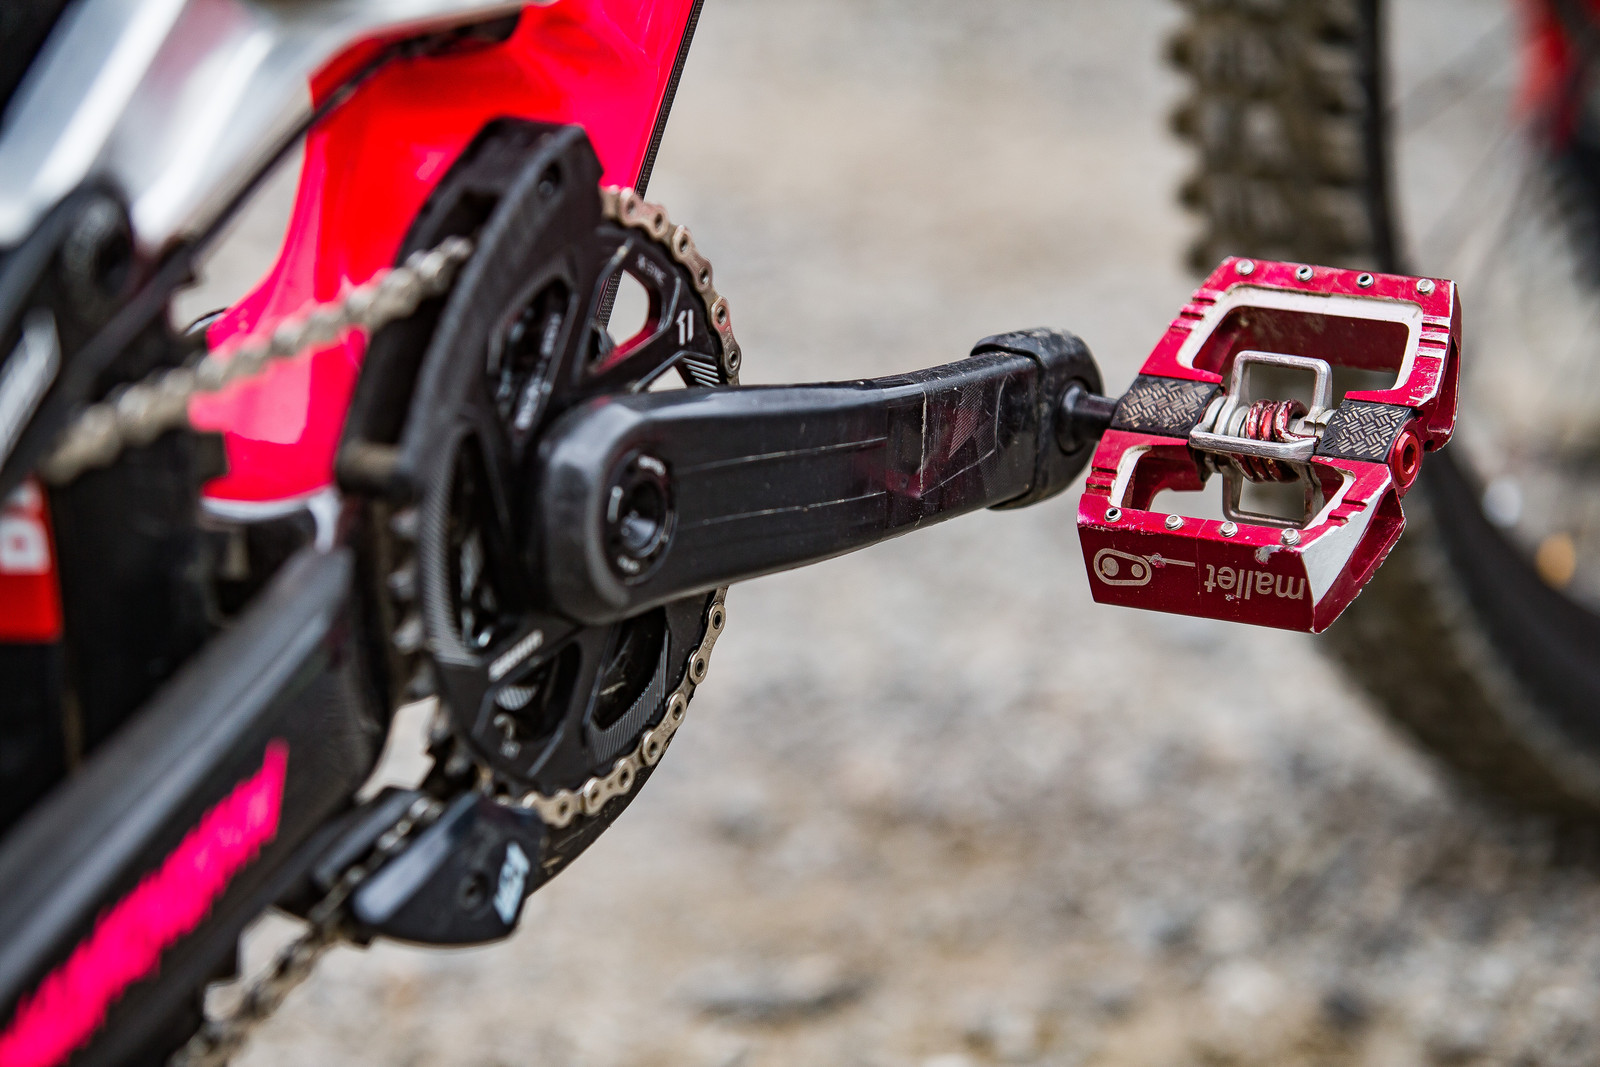 Crank Brothers Mallet DH Pedals - WINNING BIKE: Finn Iles' Specialized S-Works Demo - Mountain Biking Pictures - Vital MTB